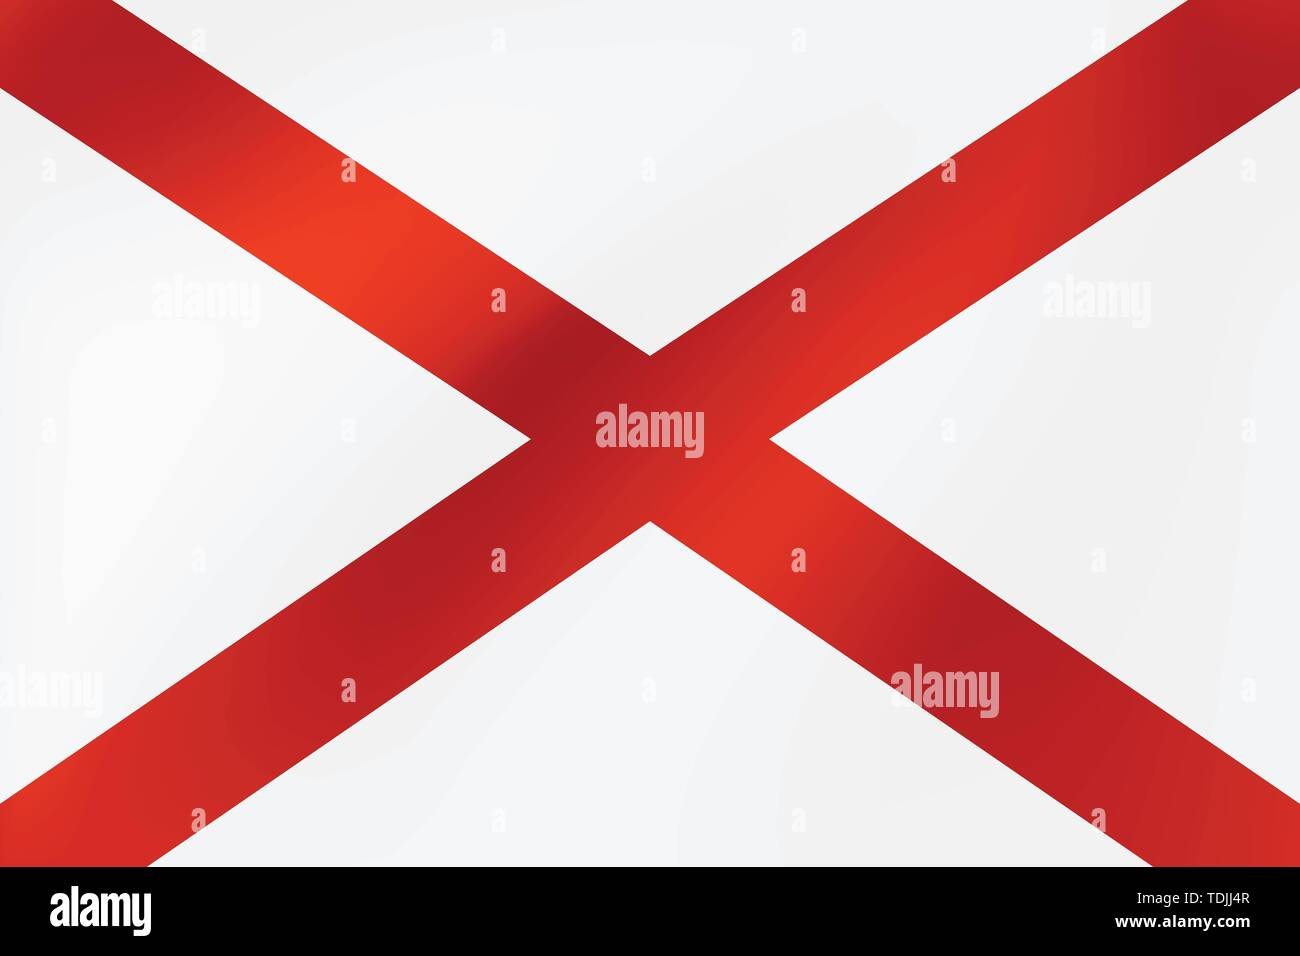 National Flag of Northern Ireland. Vector illustration for holidays and other events. - Stock Image